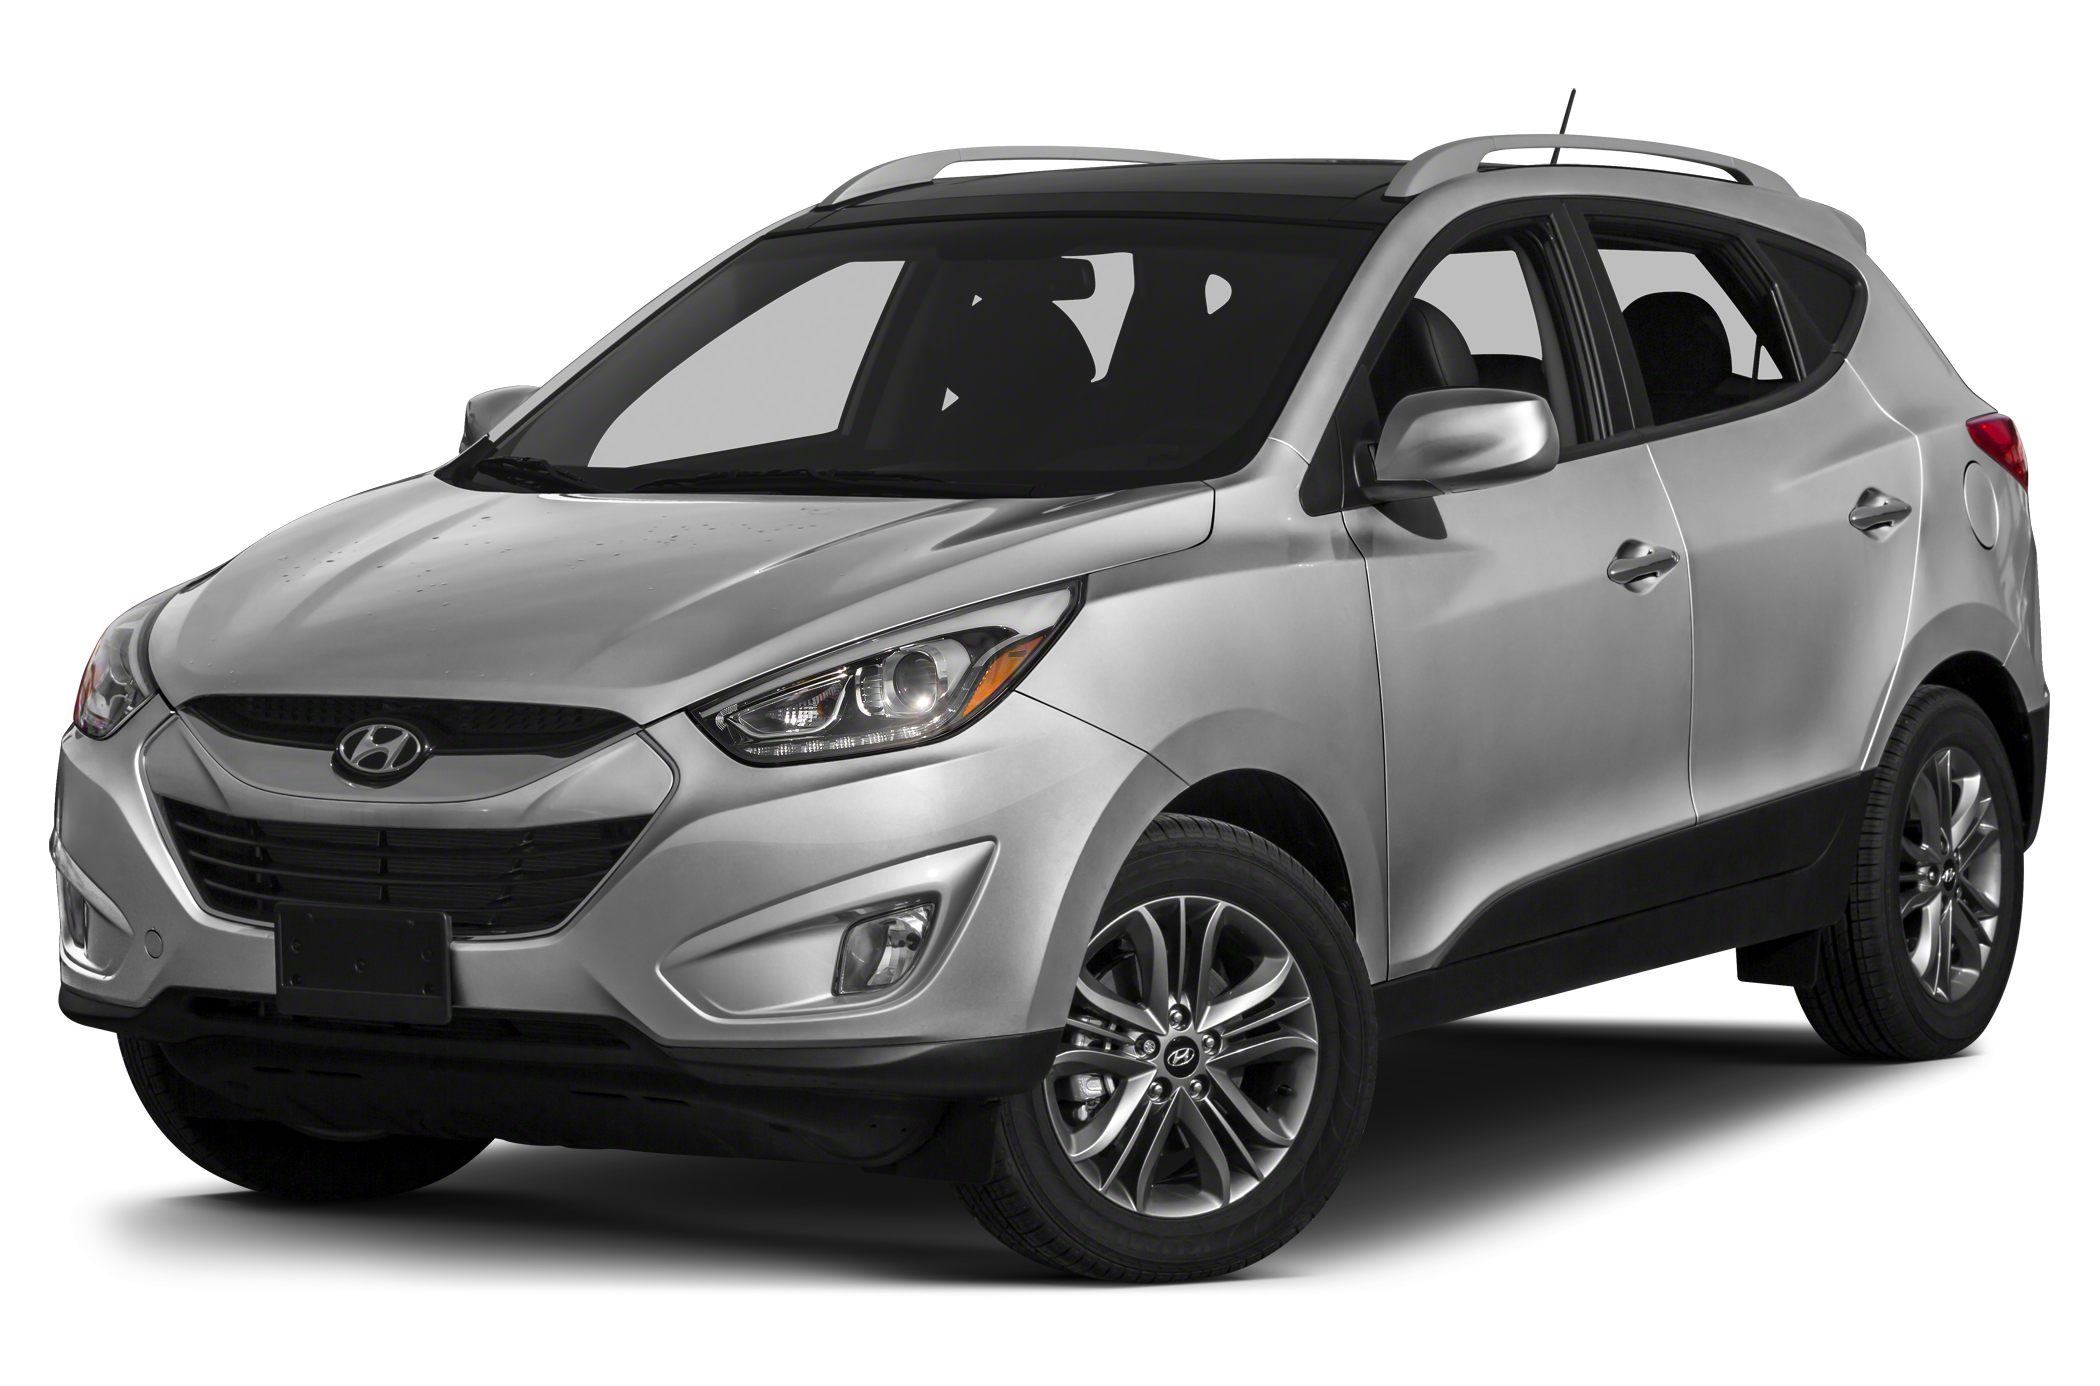 2015 Hyundai Tucson New Car Test Drive